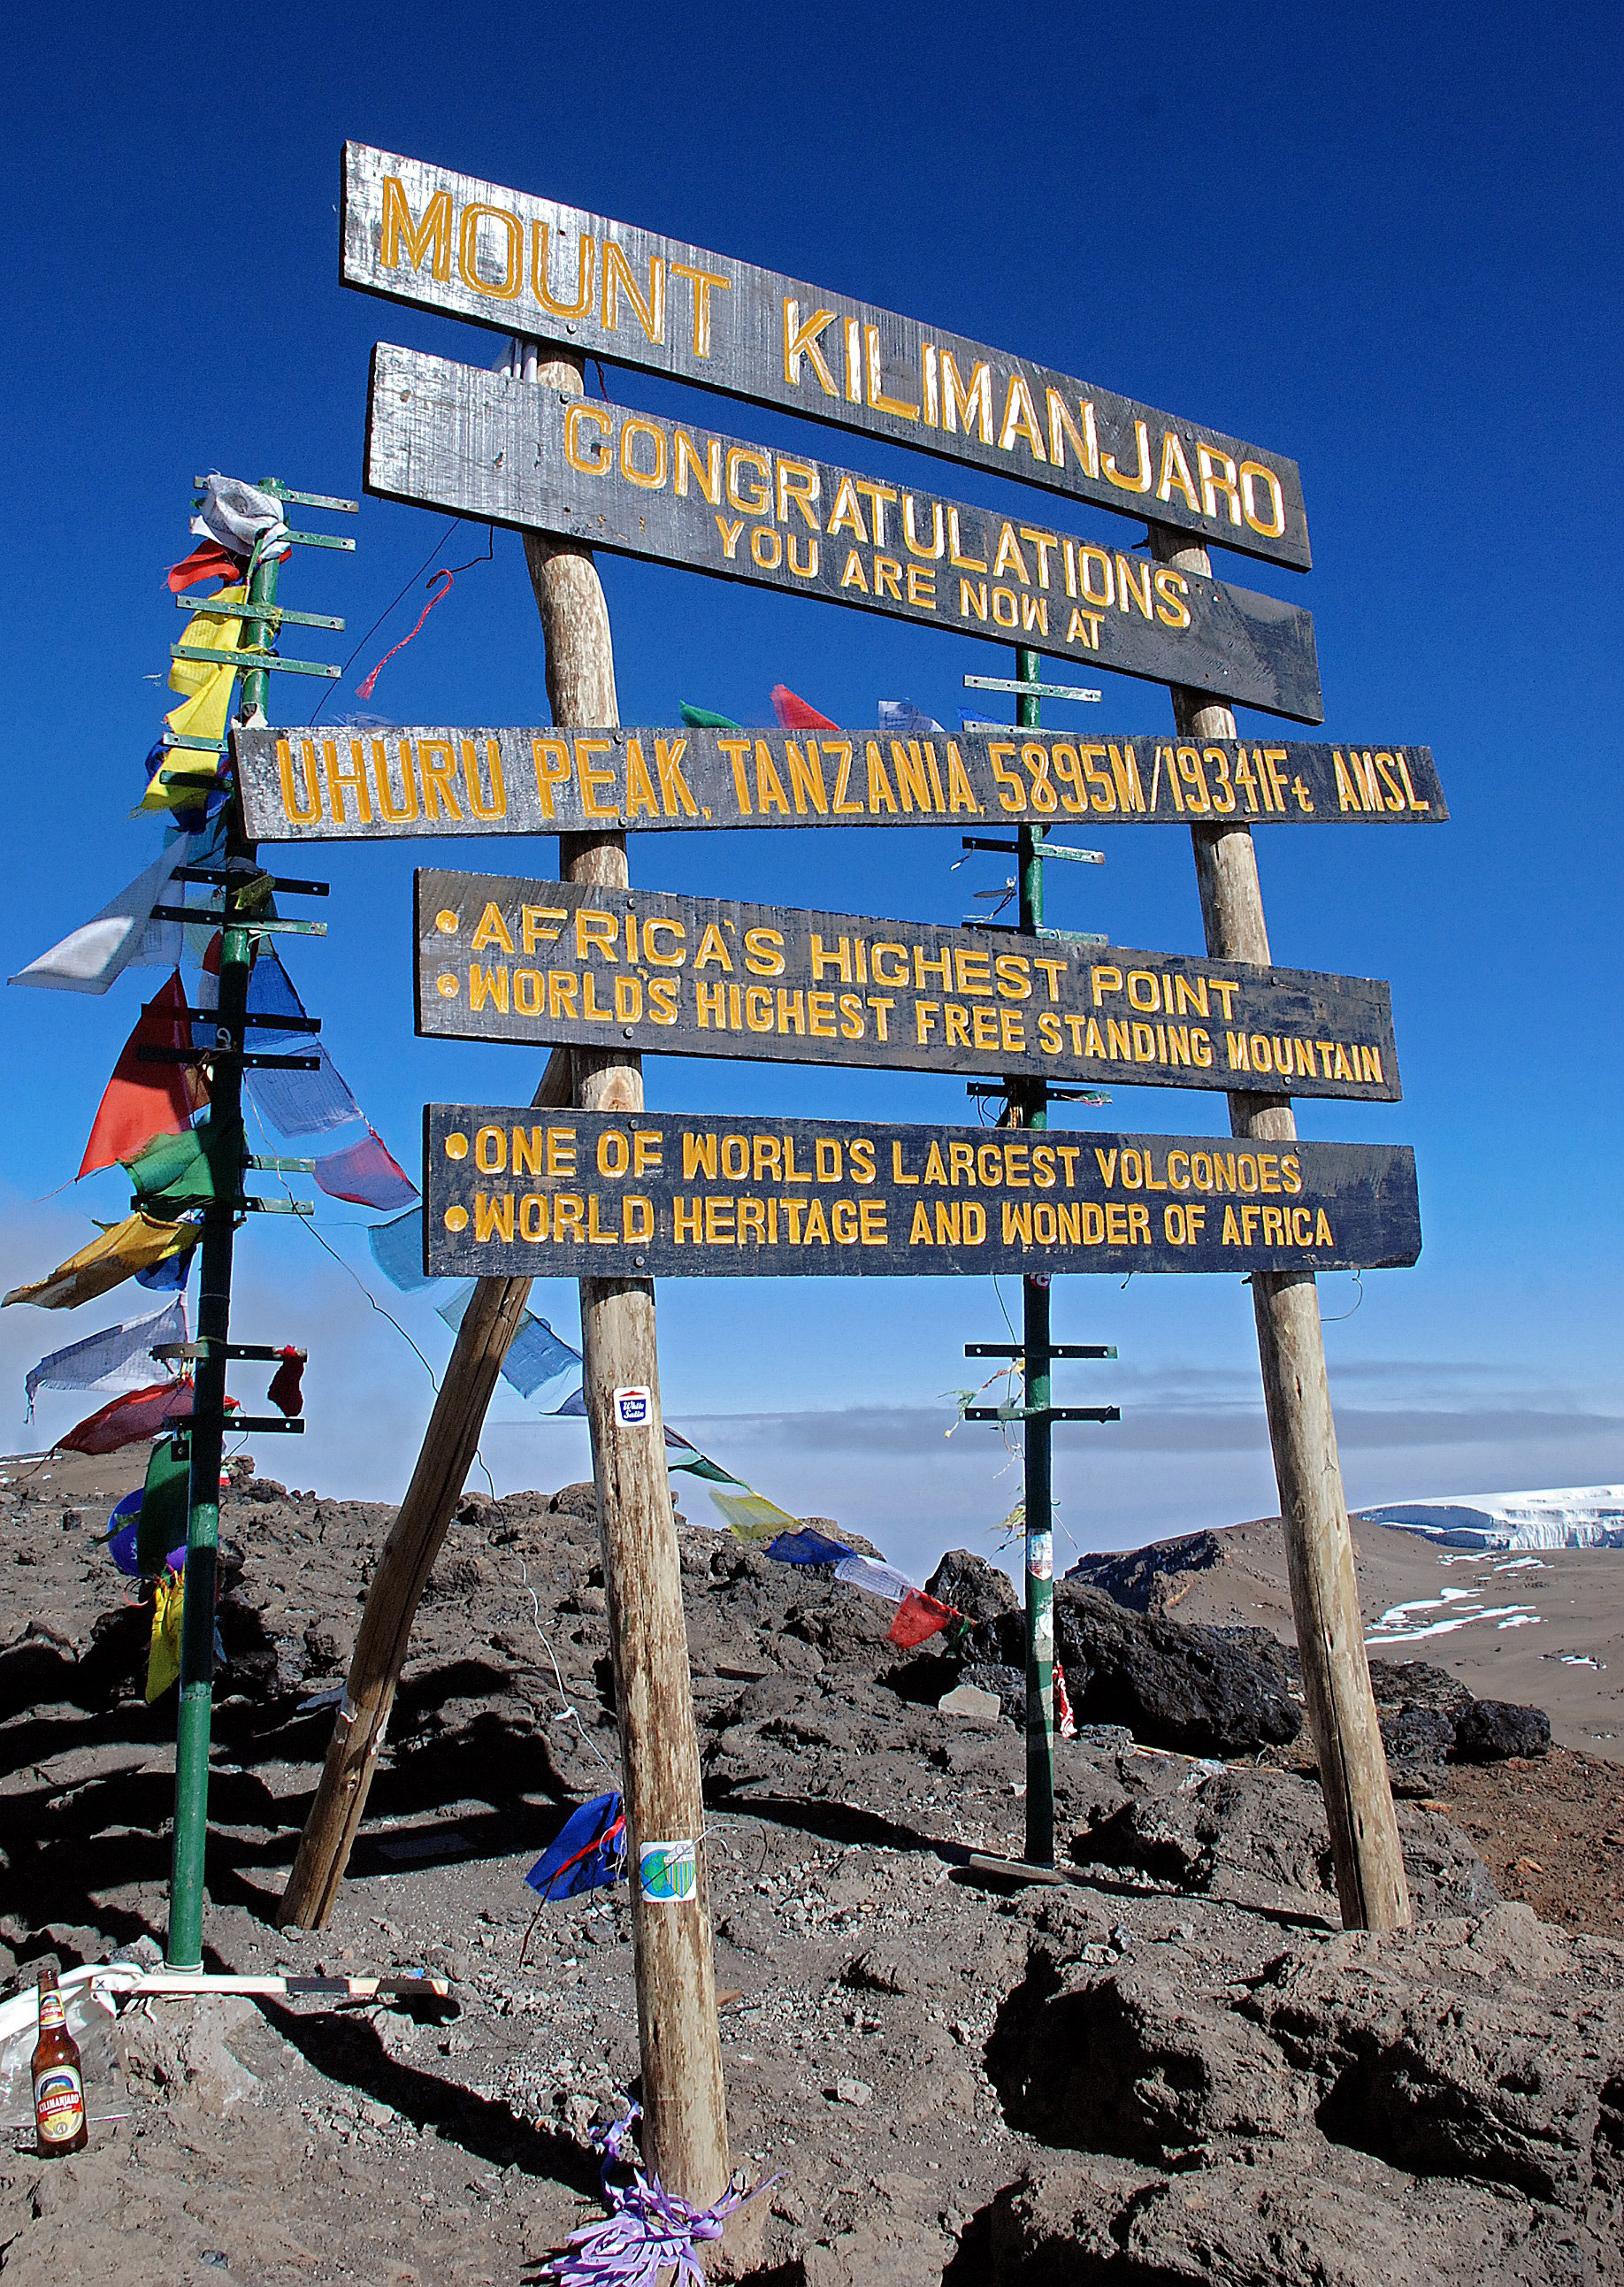 The sign at the peak of Mount Kilimanjaro, Tanzania on September 26, 2014.